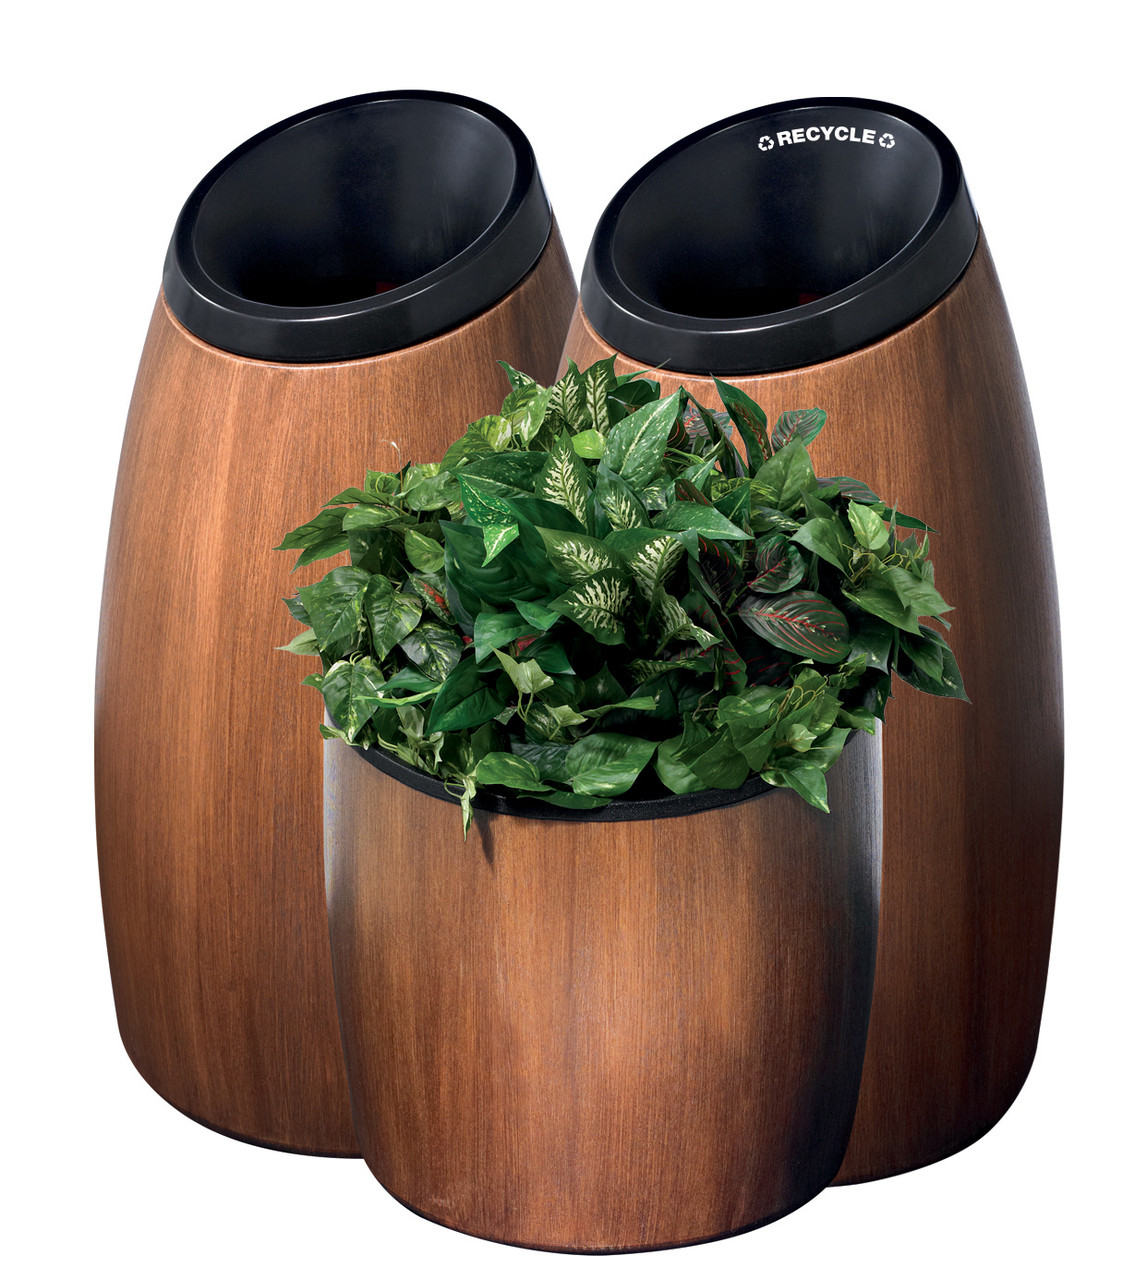 Trash Can, Recycle Bin, and Planter